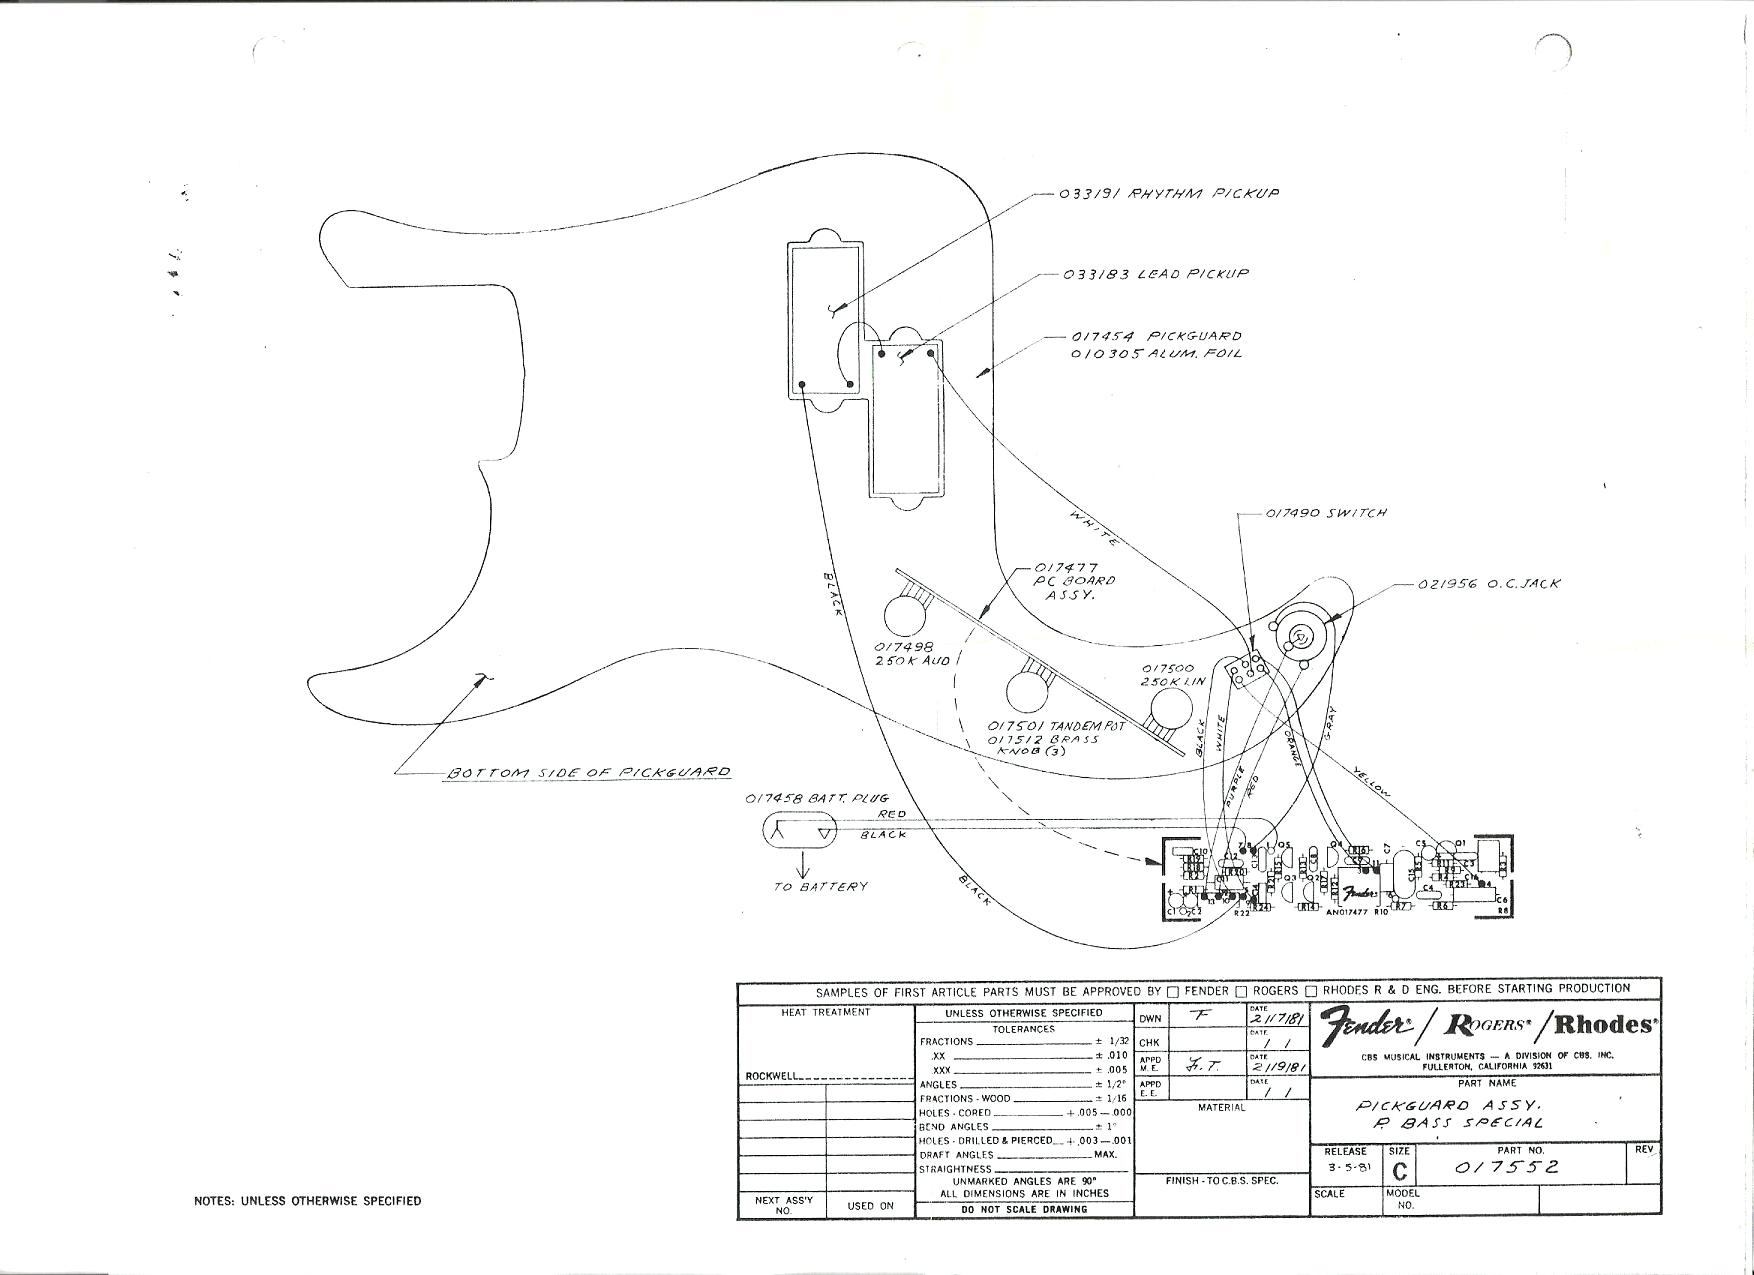 Telecaster Drawing At Free For Personal Use Fender 3 Way Wiring Diagram 1754x1275 Switch Instructions